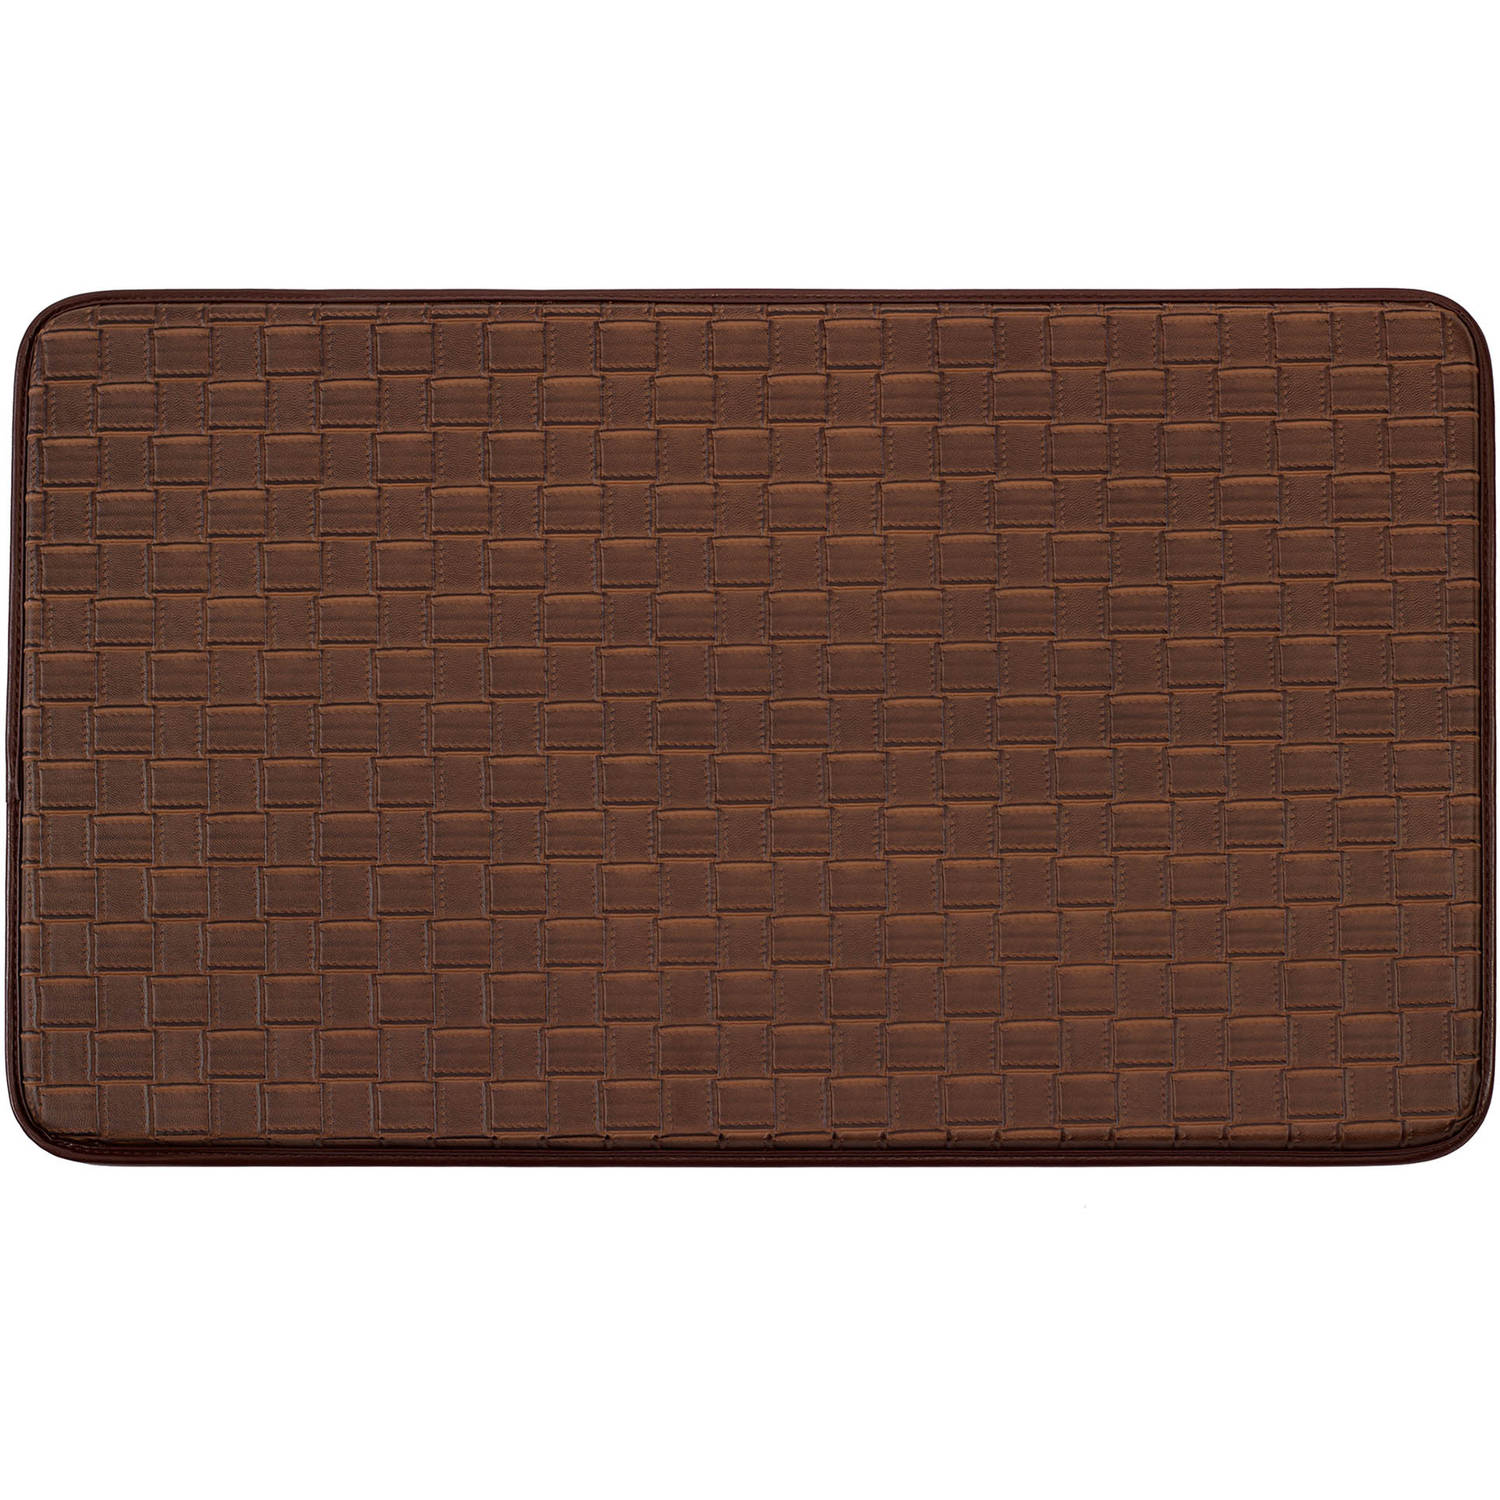 "Chef Gear Faux-Leather Basket Weave 20"" x 32"" Comfort Chef Mat"